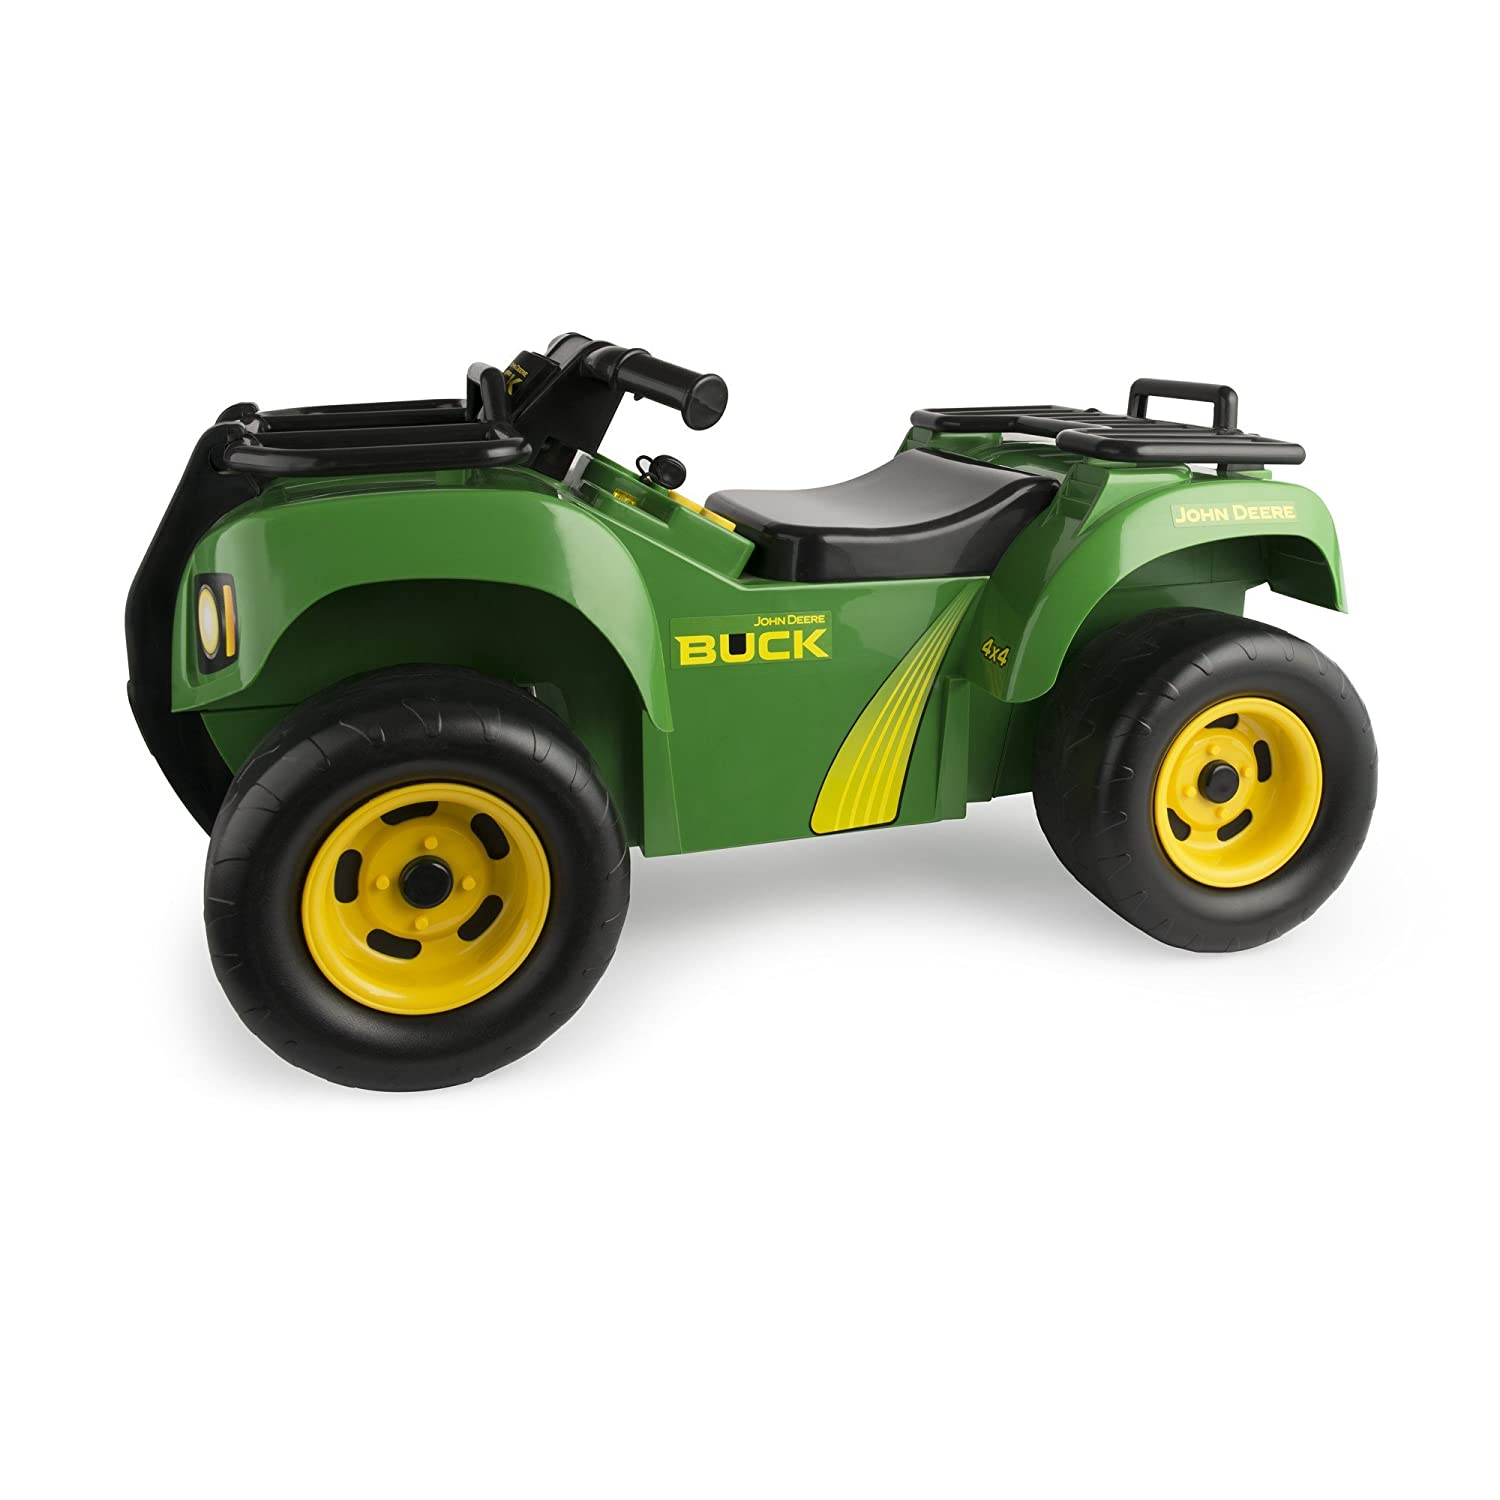 Amazon.com: John Deere Sit-N-Scoot Buck With Lights And Sounds: Toys & Games